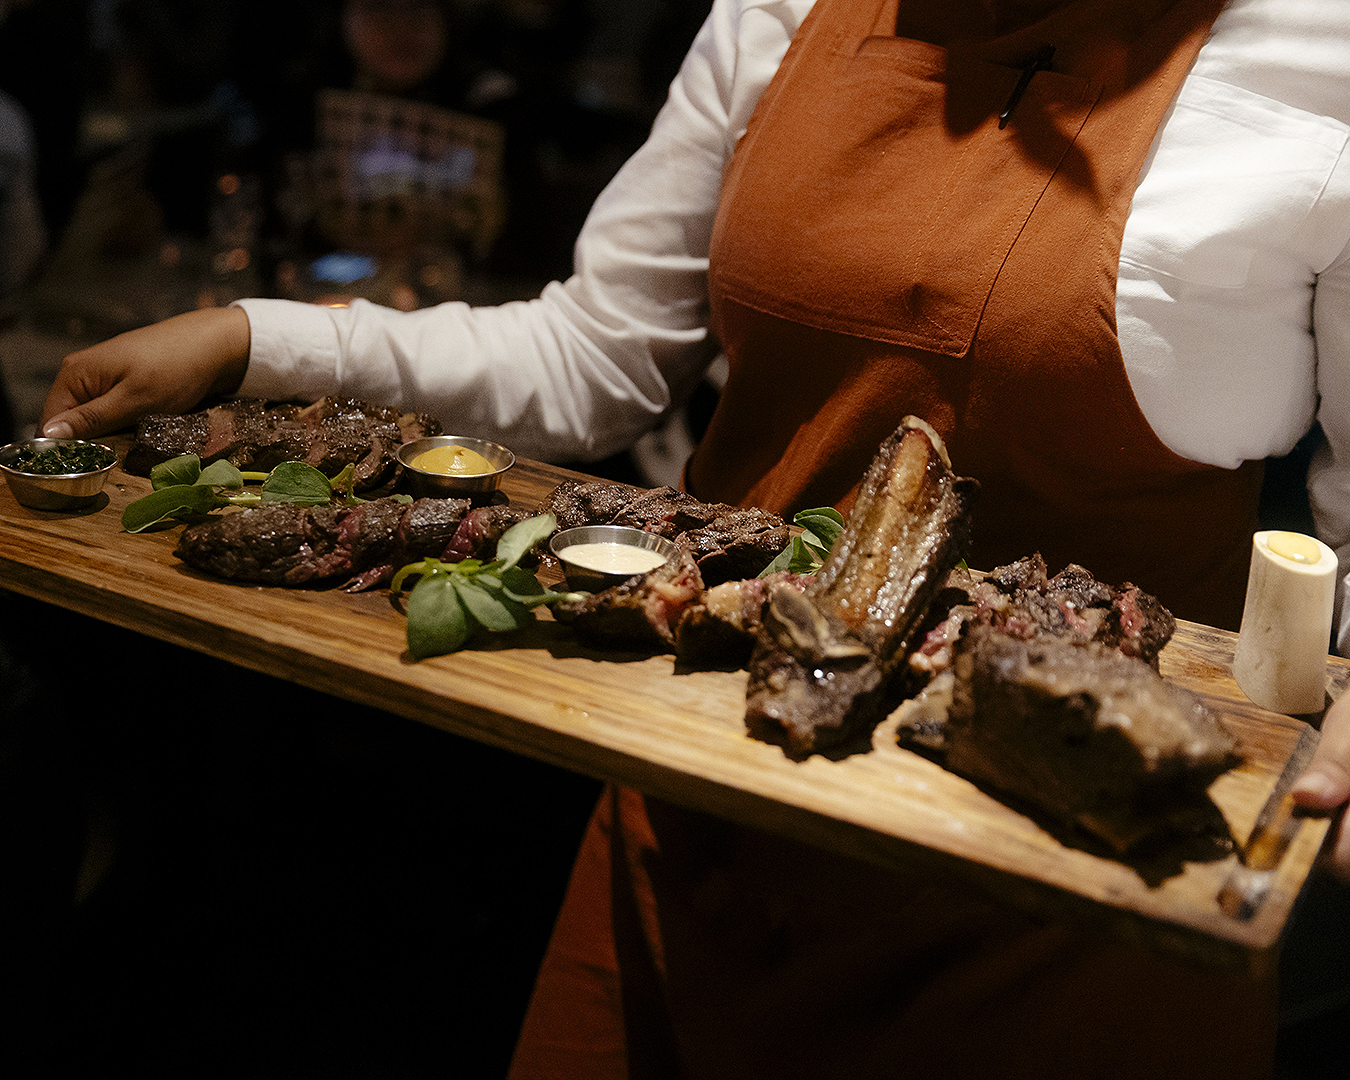 A waitress carries a massive slab of meat on a wooden board.